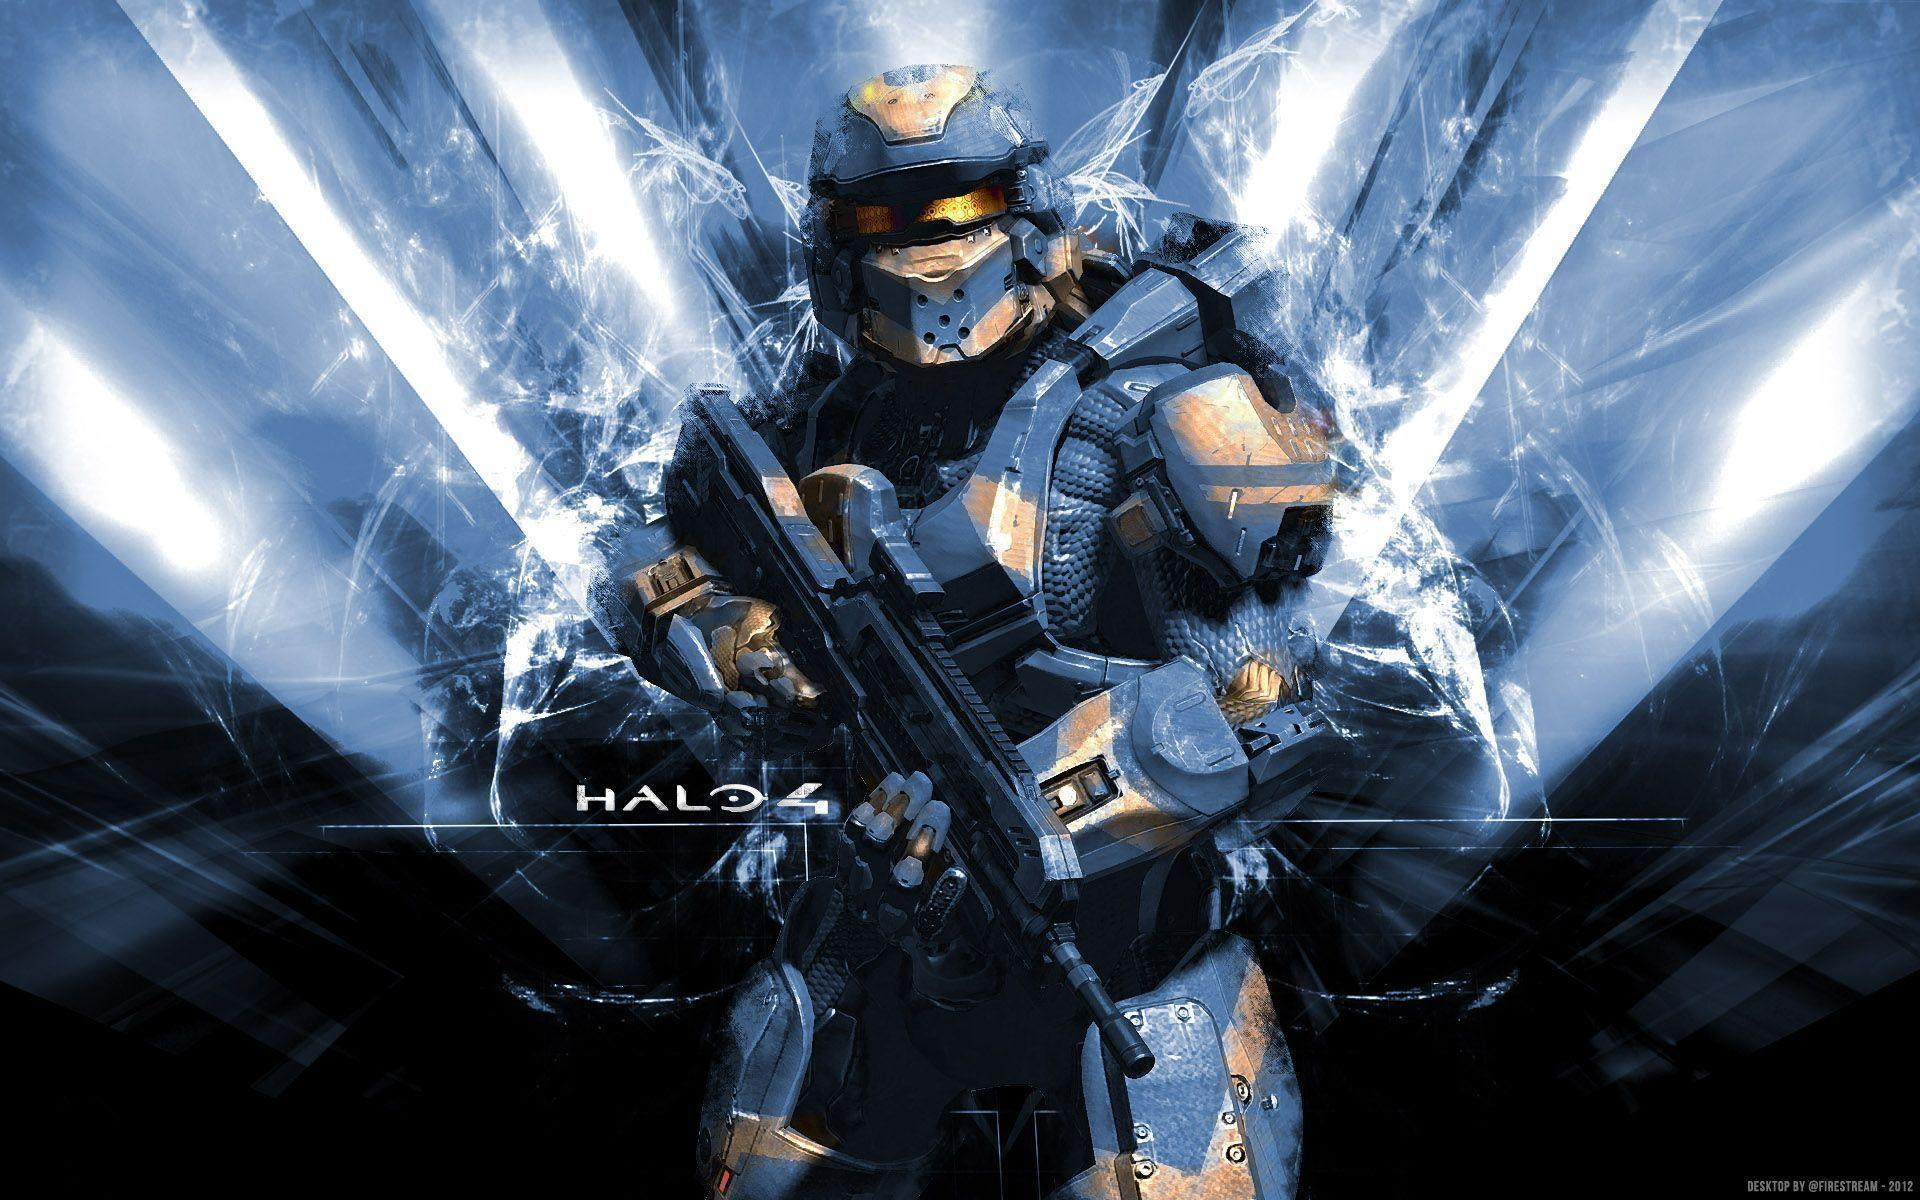 Cool Halo 4 Wallpapers 111355 Best HD Wallpapers